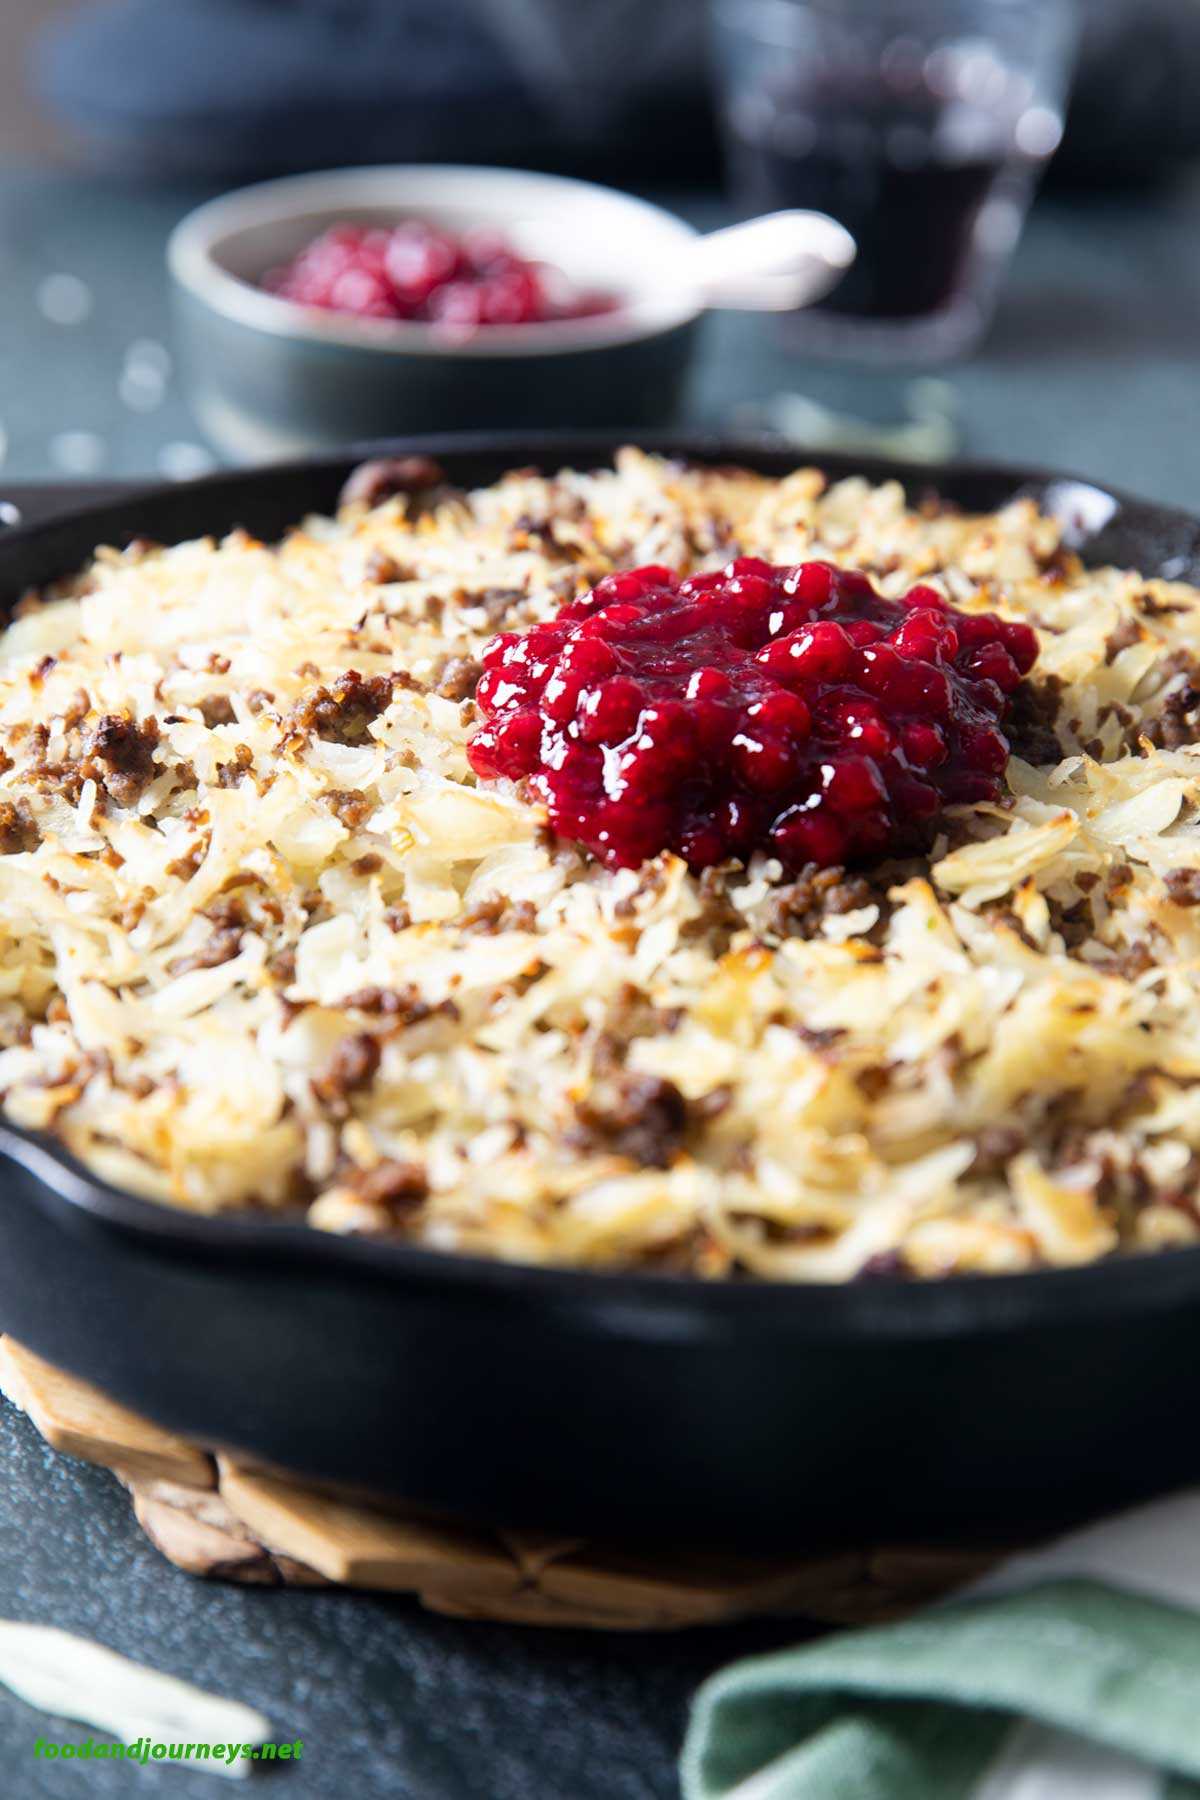 A closer shot of a skillet of Ground Beef & Cabbage Casserole, with lingonberry jam on top.